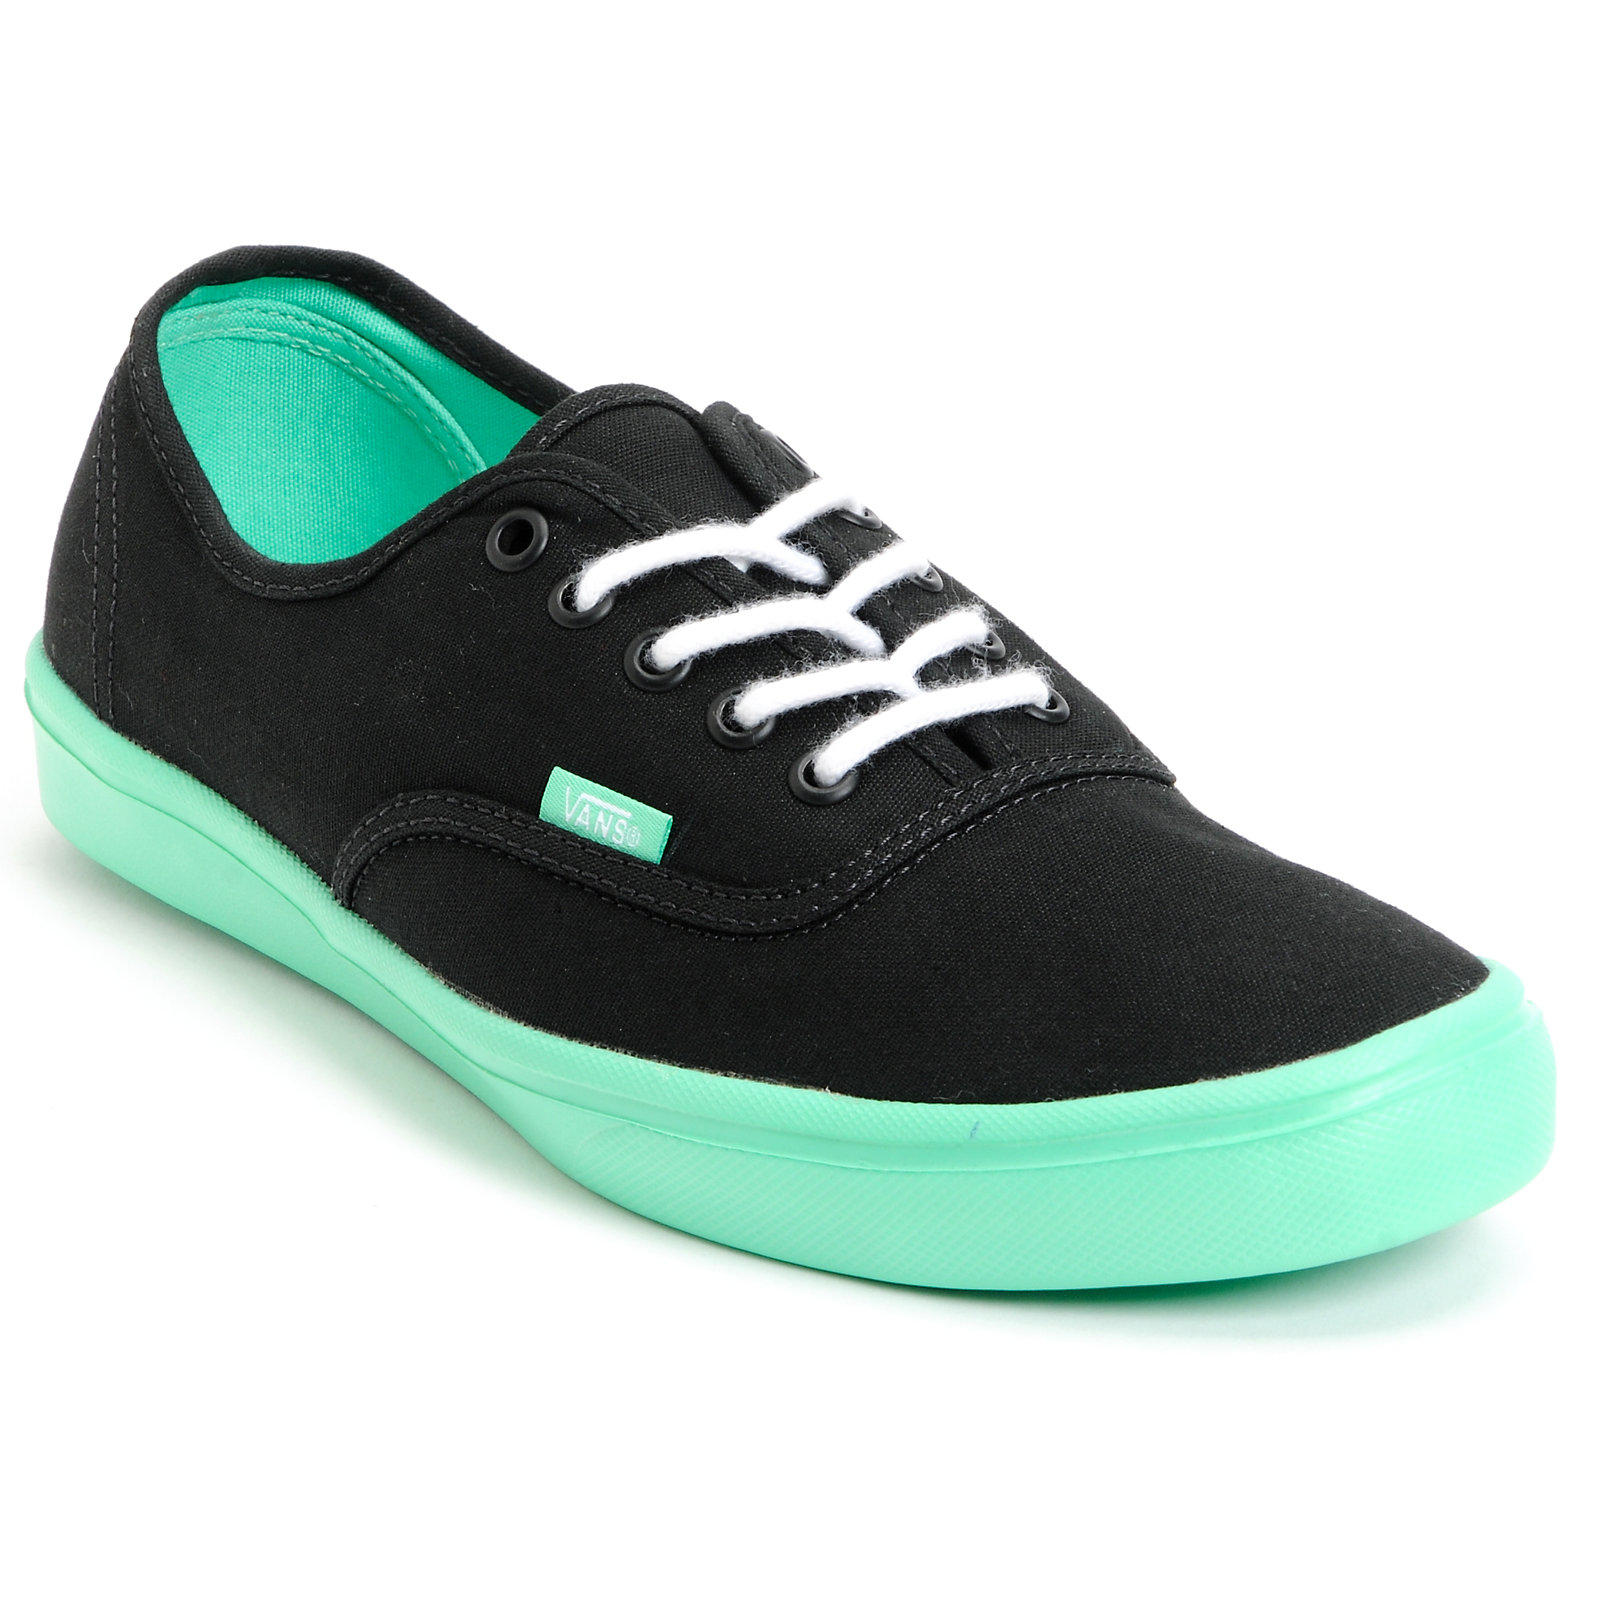 f79d90861401b2 Vans Authentic Lite Black   Green Shoe at from Zumiez